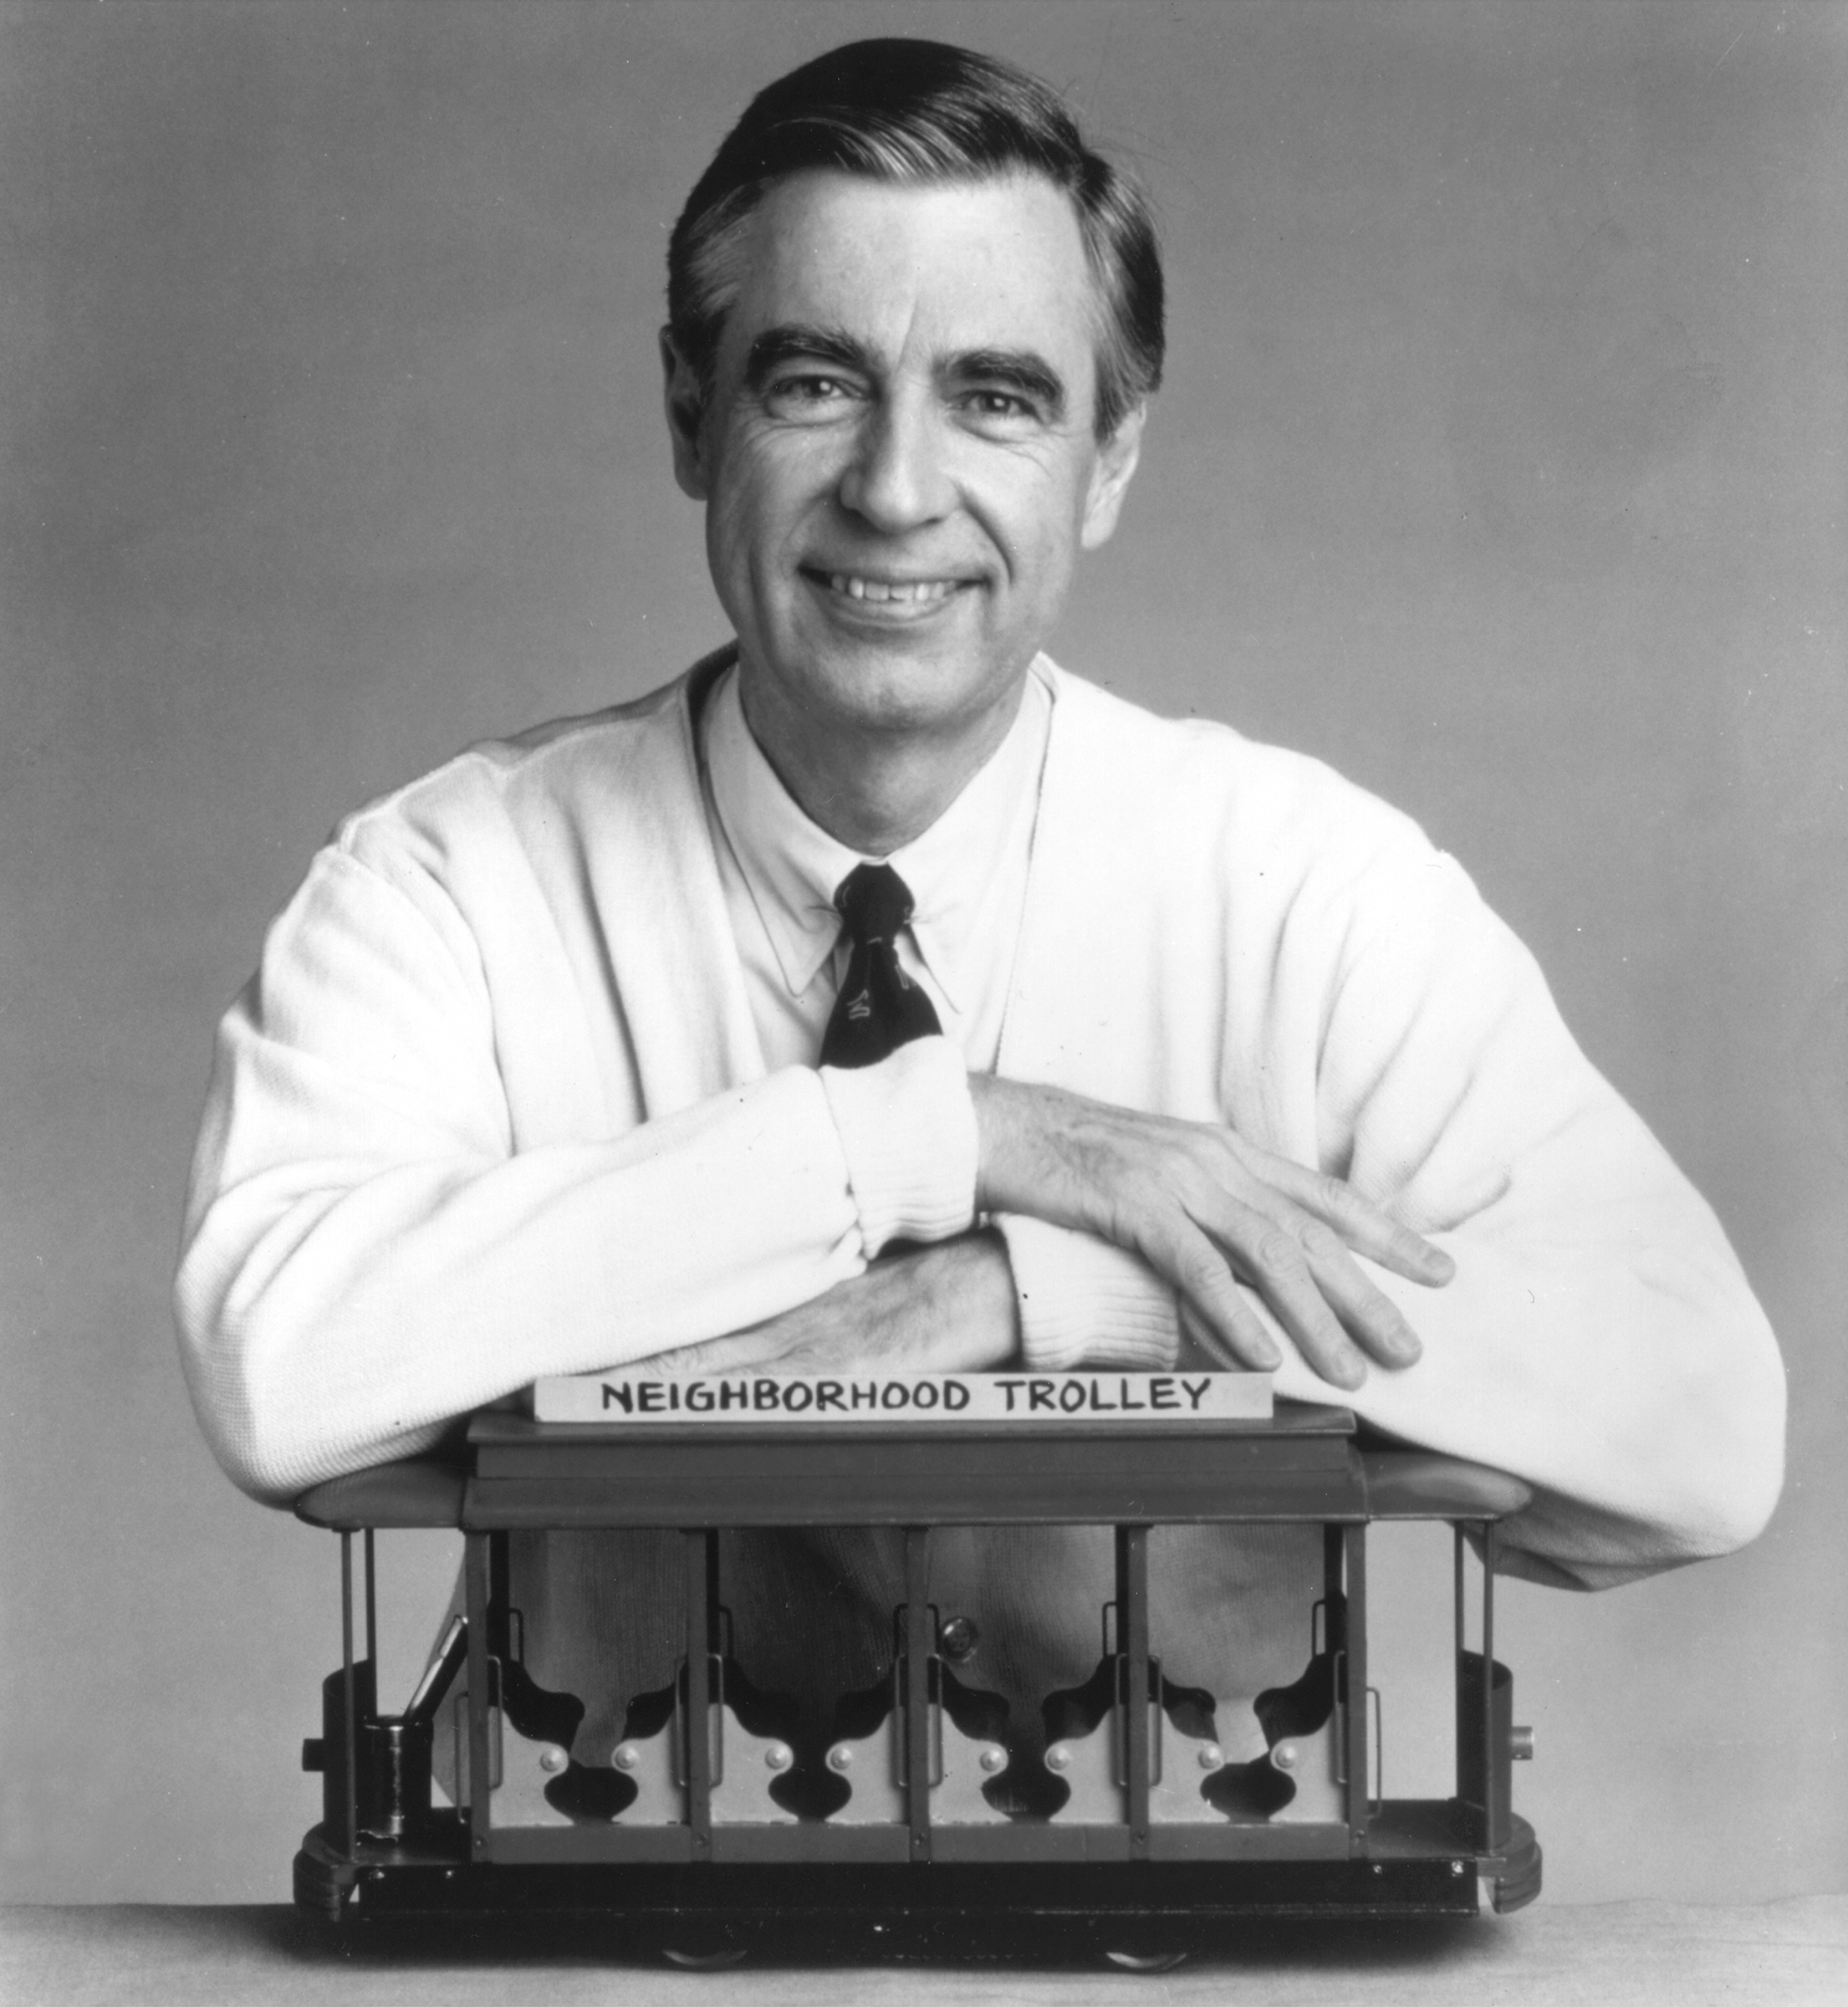 Fred Rogers, the host of the children's television series,  Mr. Rogers' Neighborhood,  rests his arms on a small trolley in this promotional portrait from the 1980's.